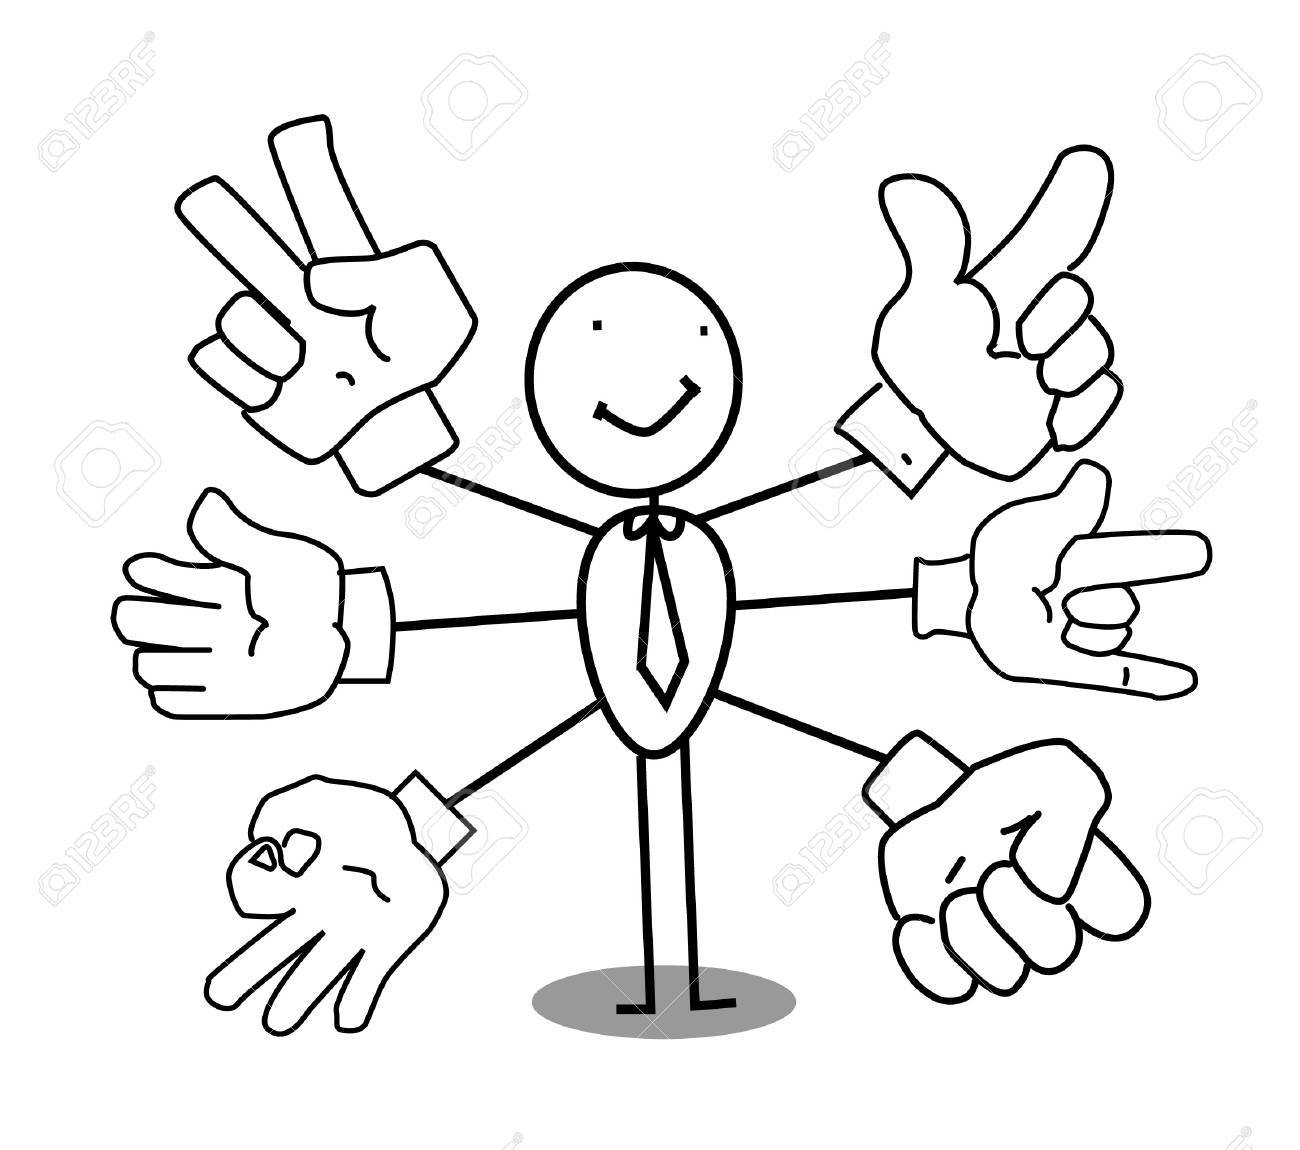 hand sign businessman Stock Vector - 11815143